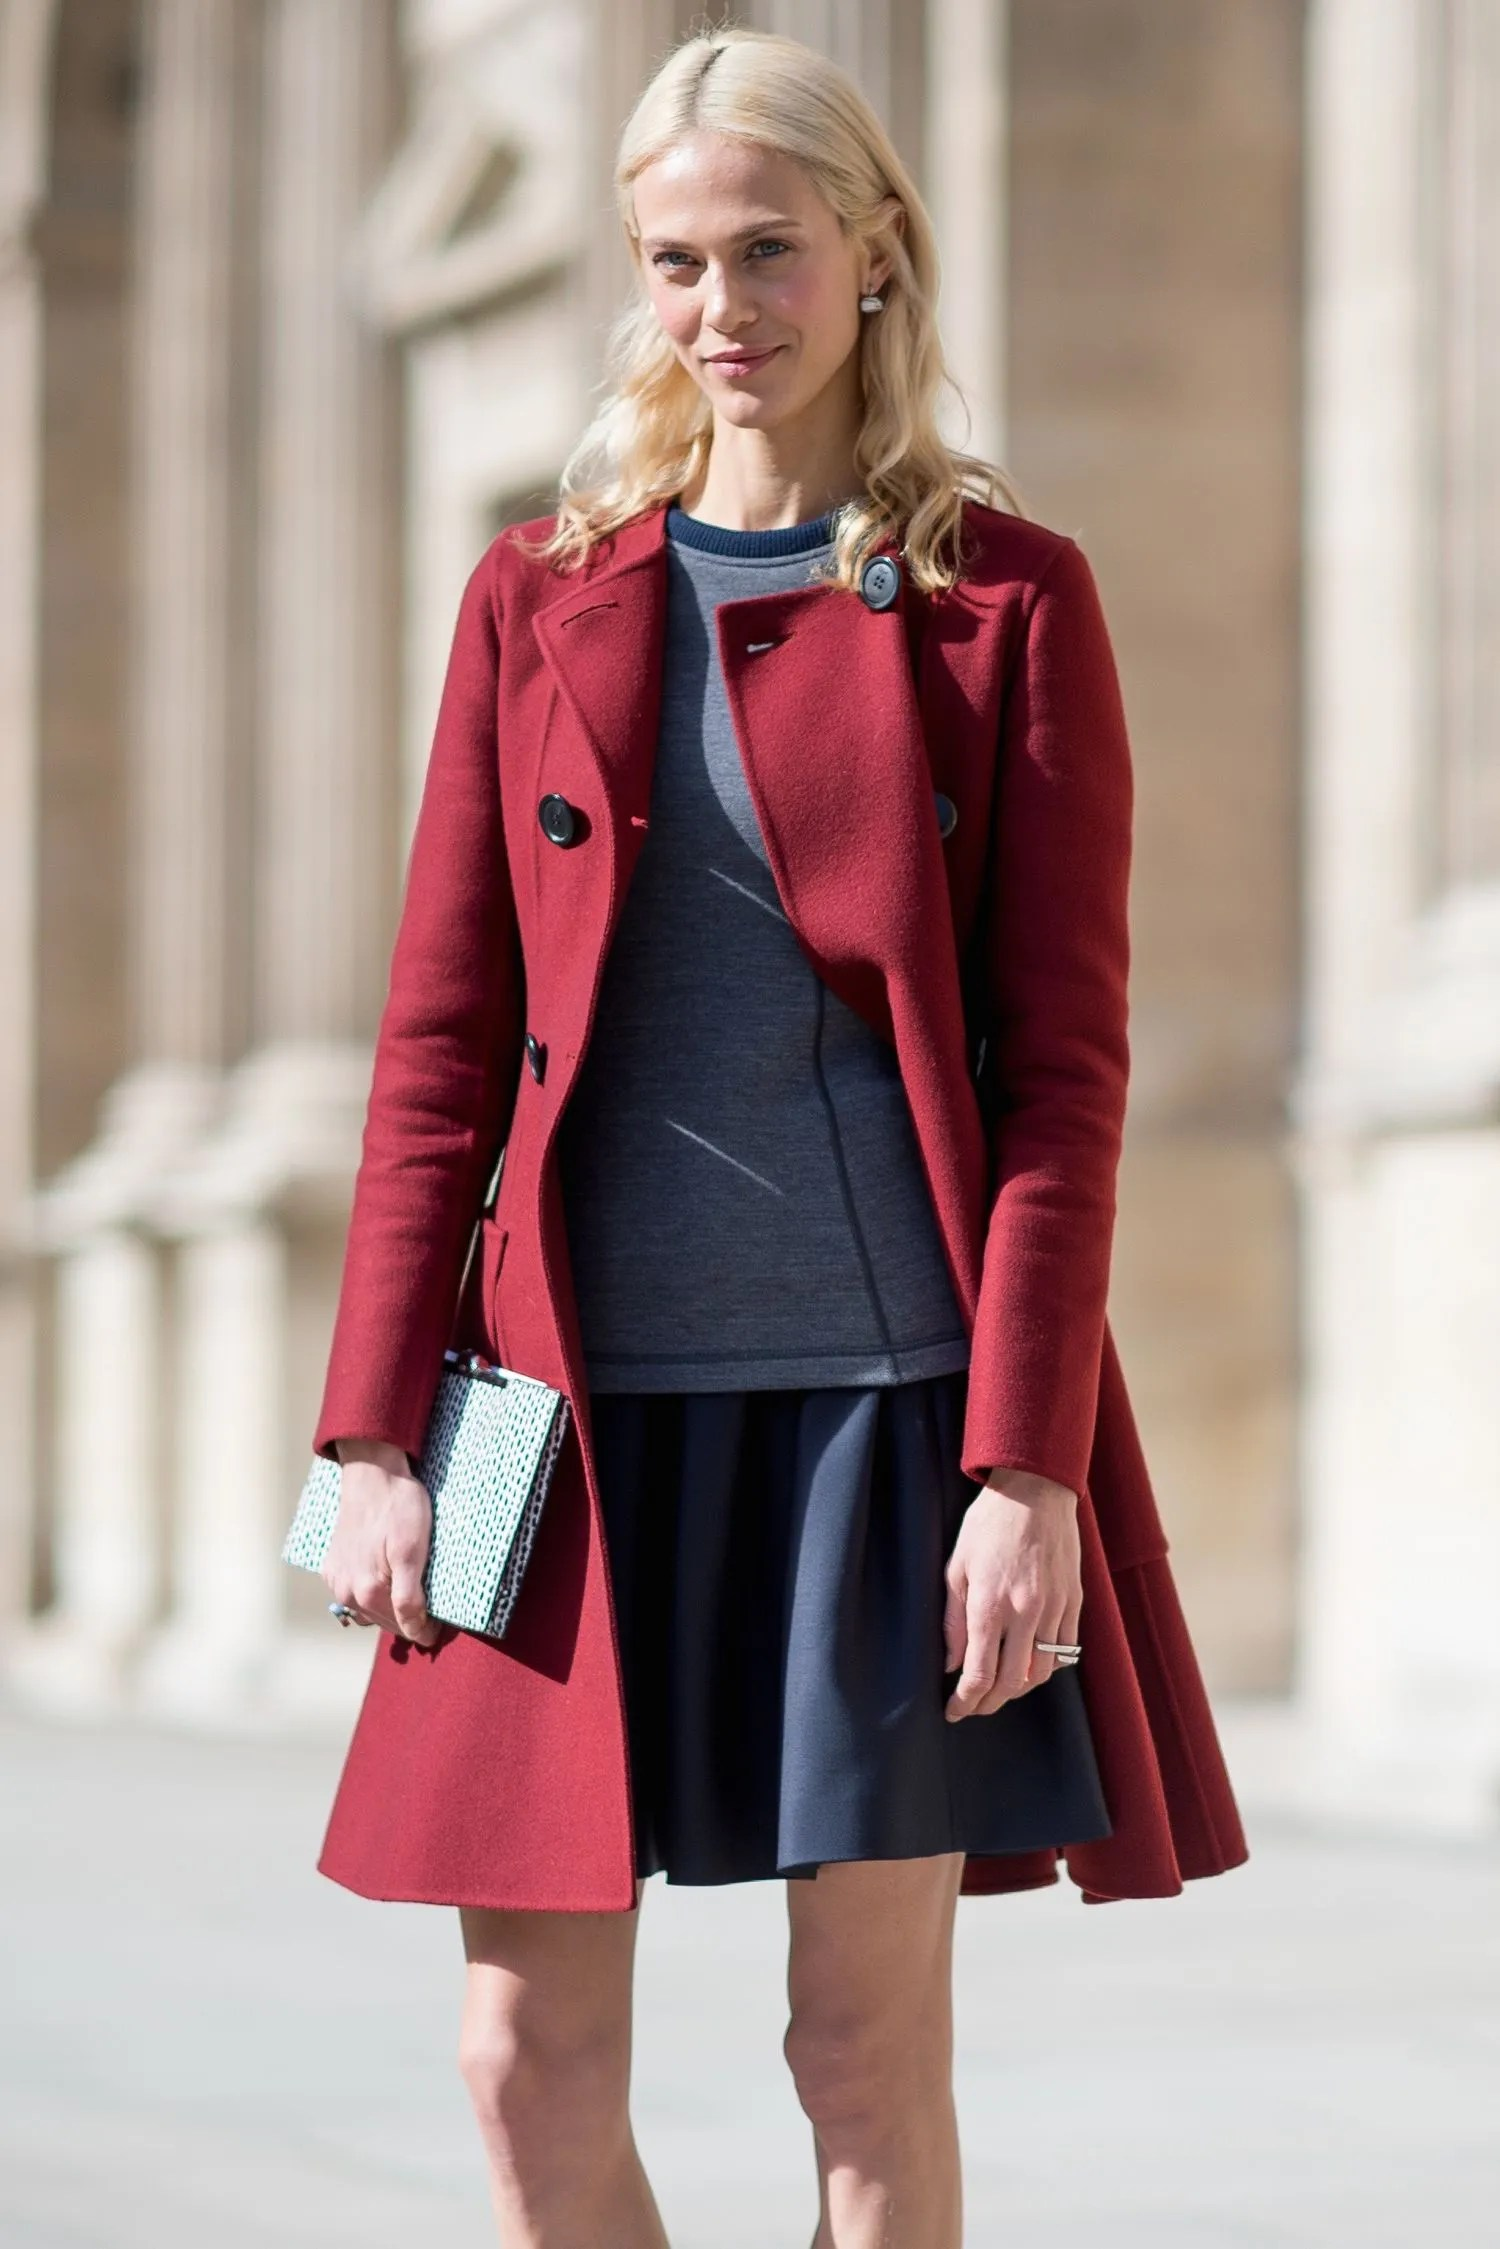 Winter Work And Casual Outfit Ideas Ways To Wear Red In